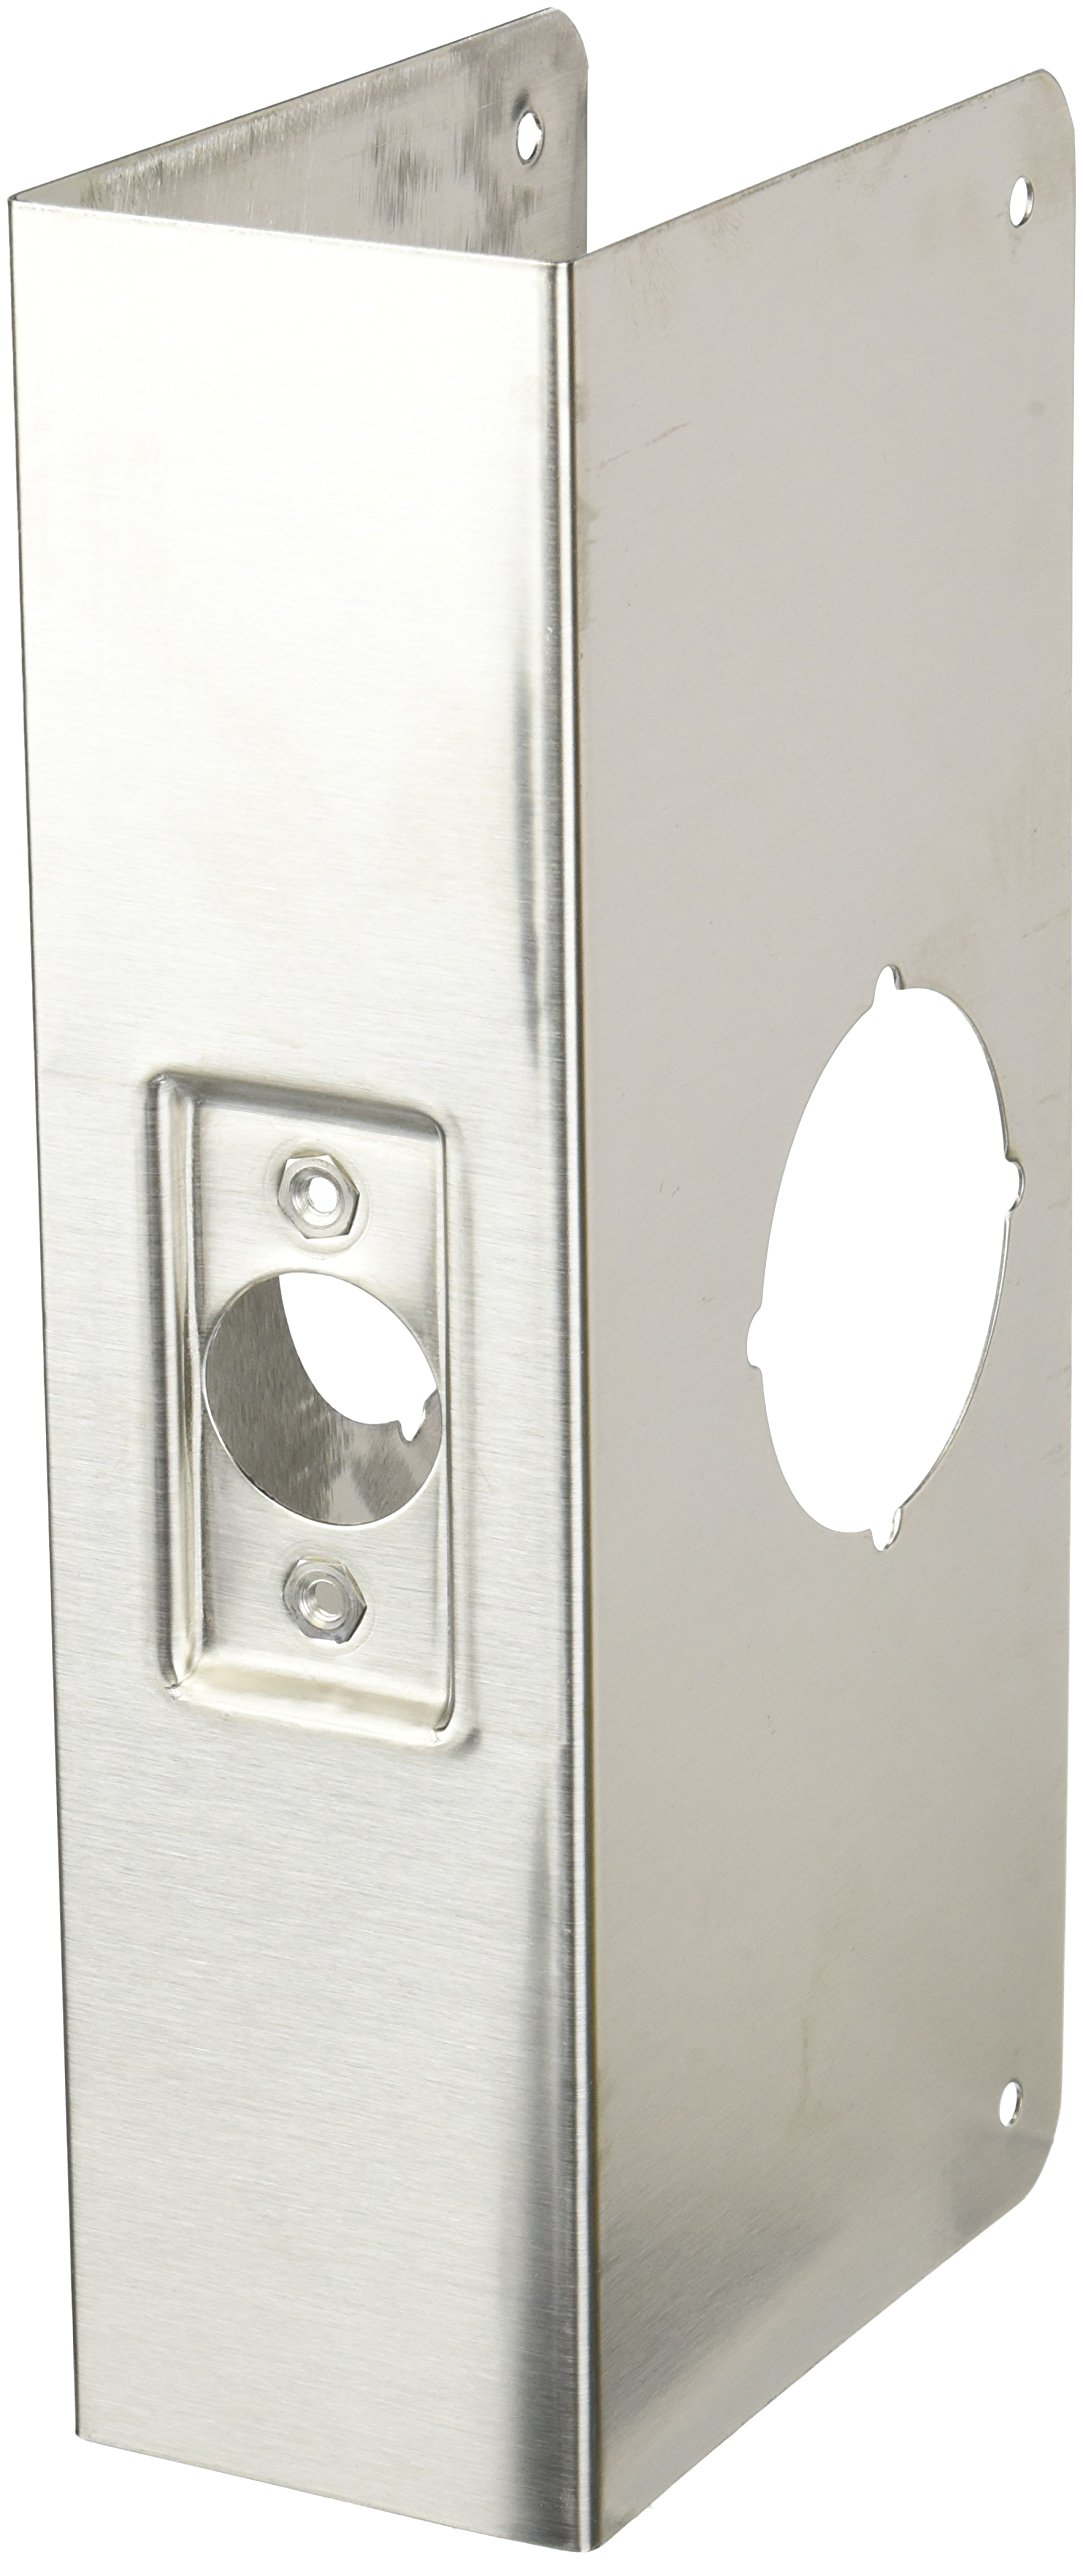 Don-Jo 214-CW 22 Gauge Stainless Steel Wrap-Around Plate, Satin Stainless Steel Finish, 4'' Width x 9'' Height, 2-3/4'' Backset, 2-1/4'' Door Size, For Thicker Doors